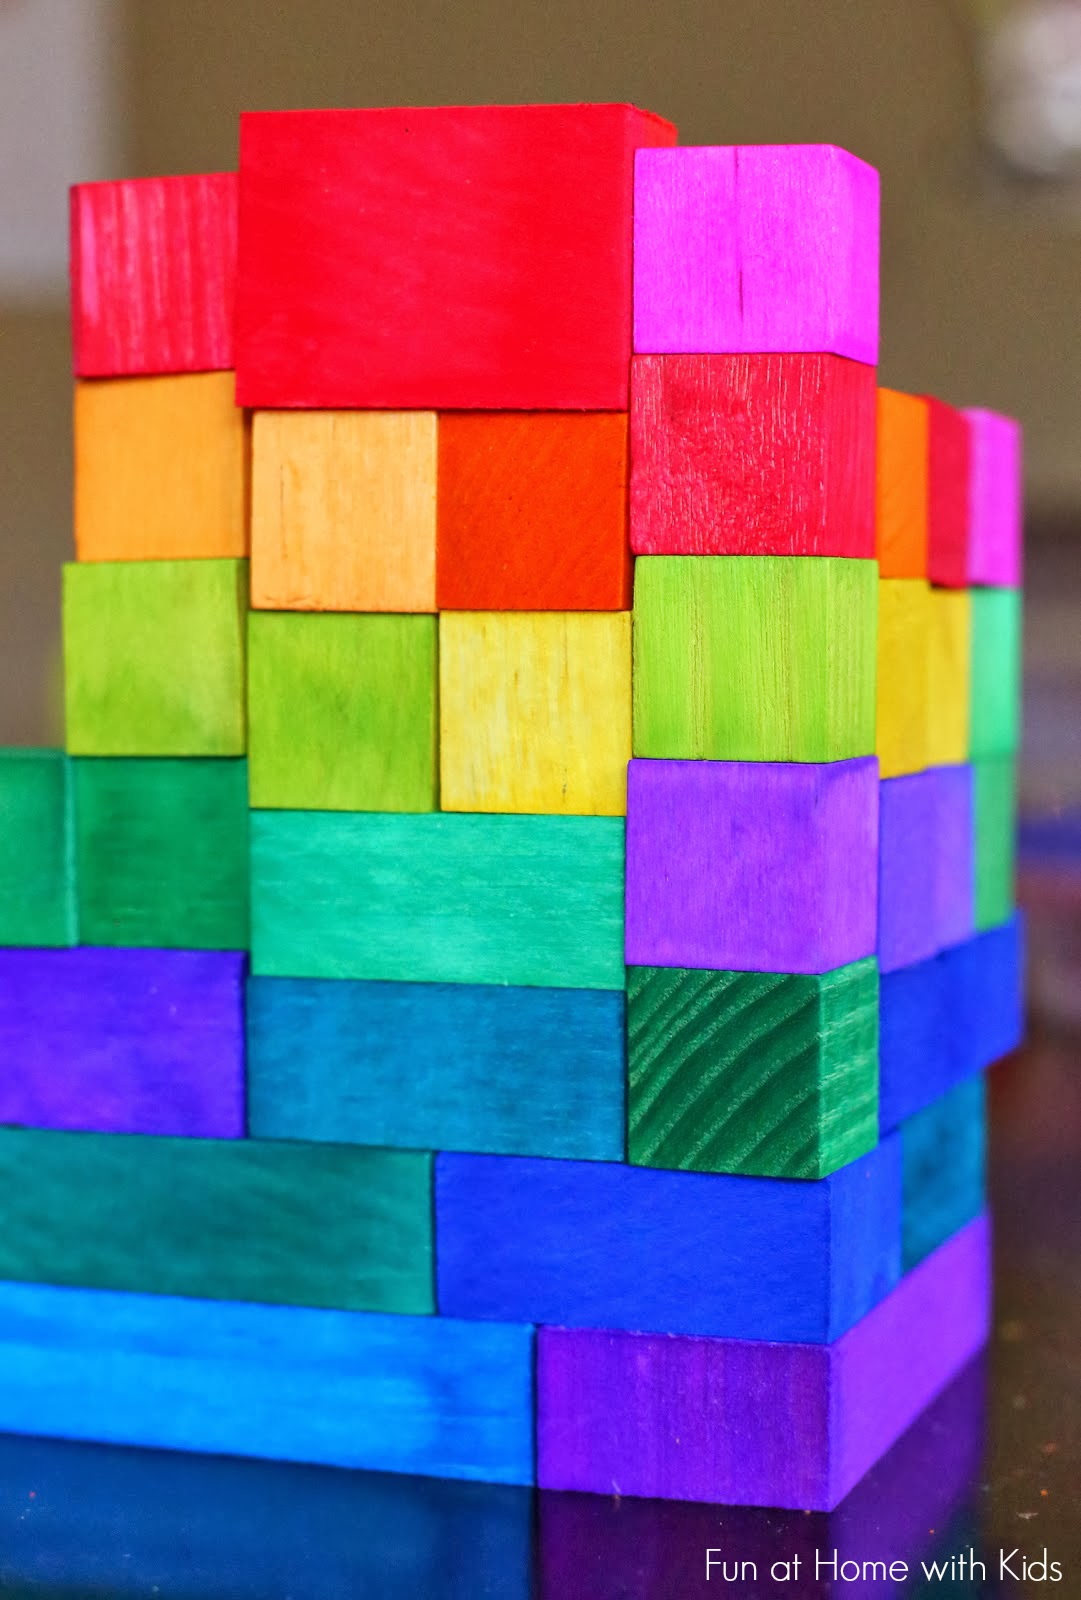 Diy dyed rainbow quot grimm style wooden blocks